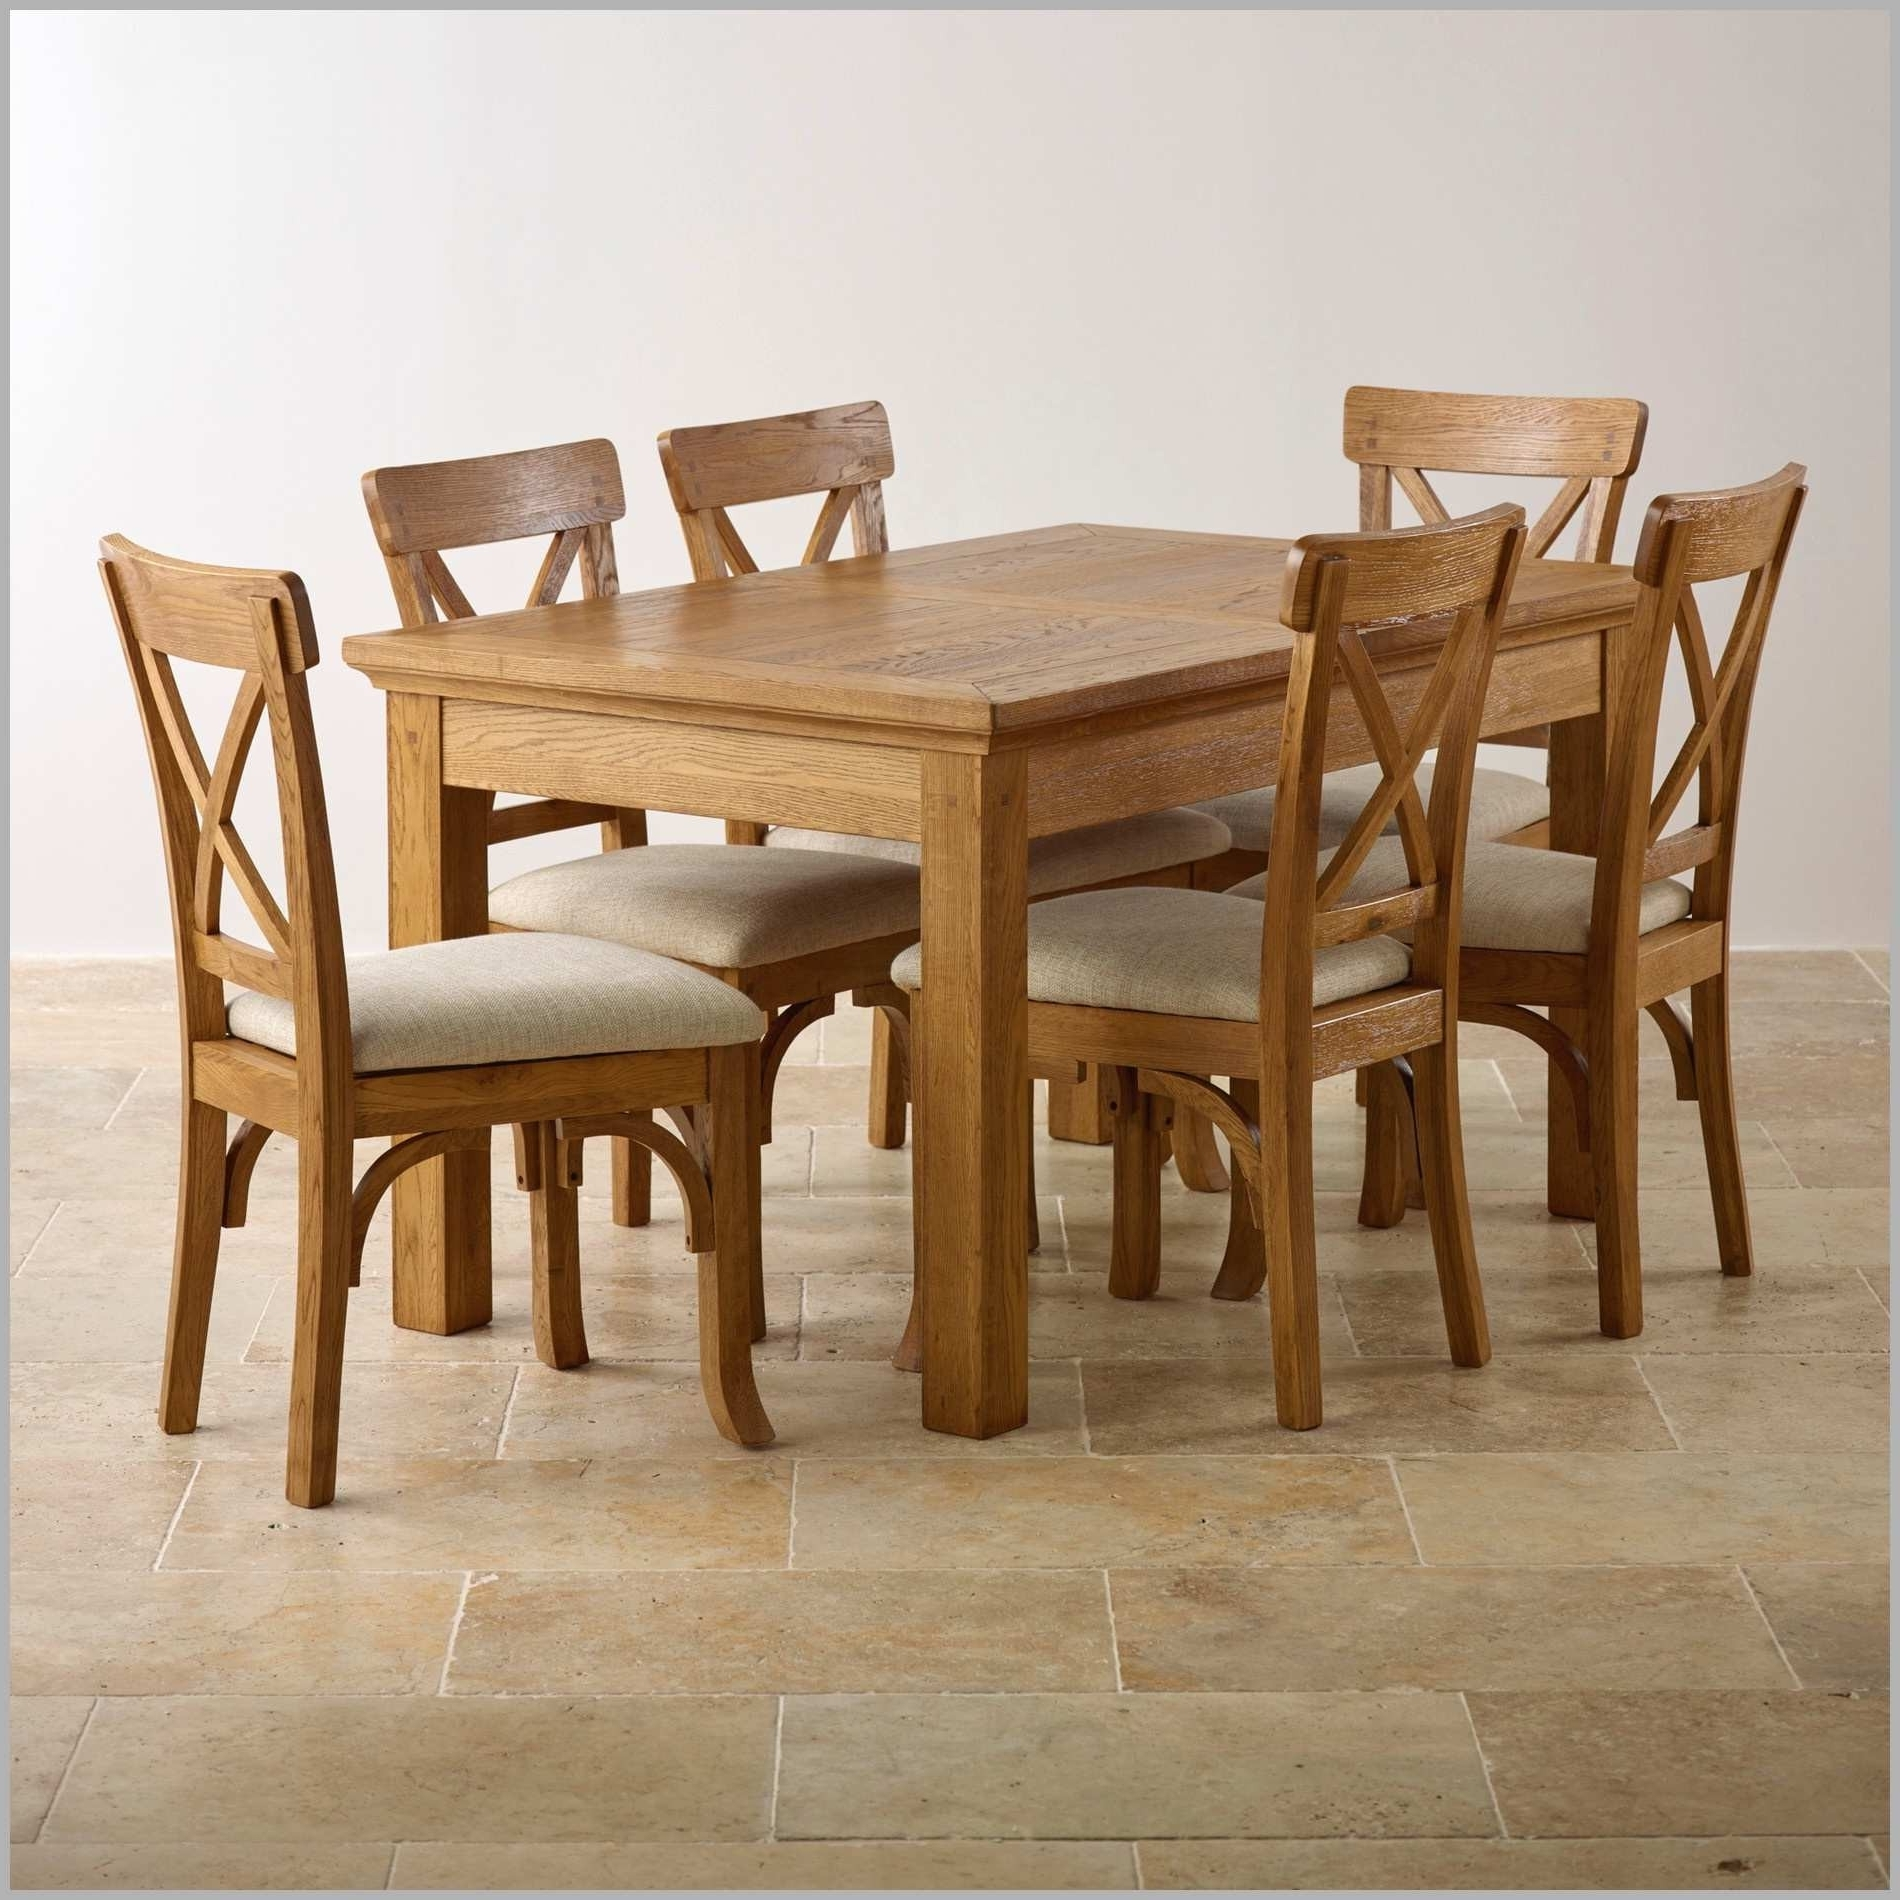 The 24 Elegant Solid Oak Round Dining Table 6 Chairs Inside Popular 8 Seater Oak Dining Tables (View 18 of 25)